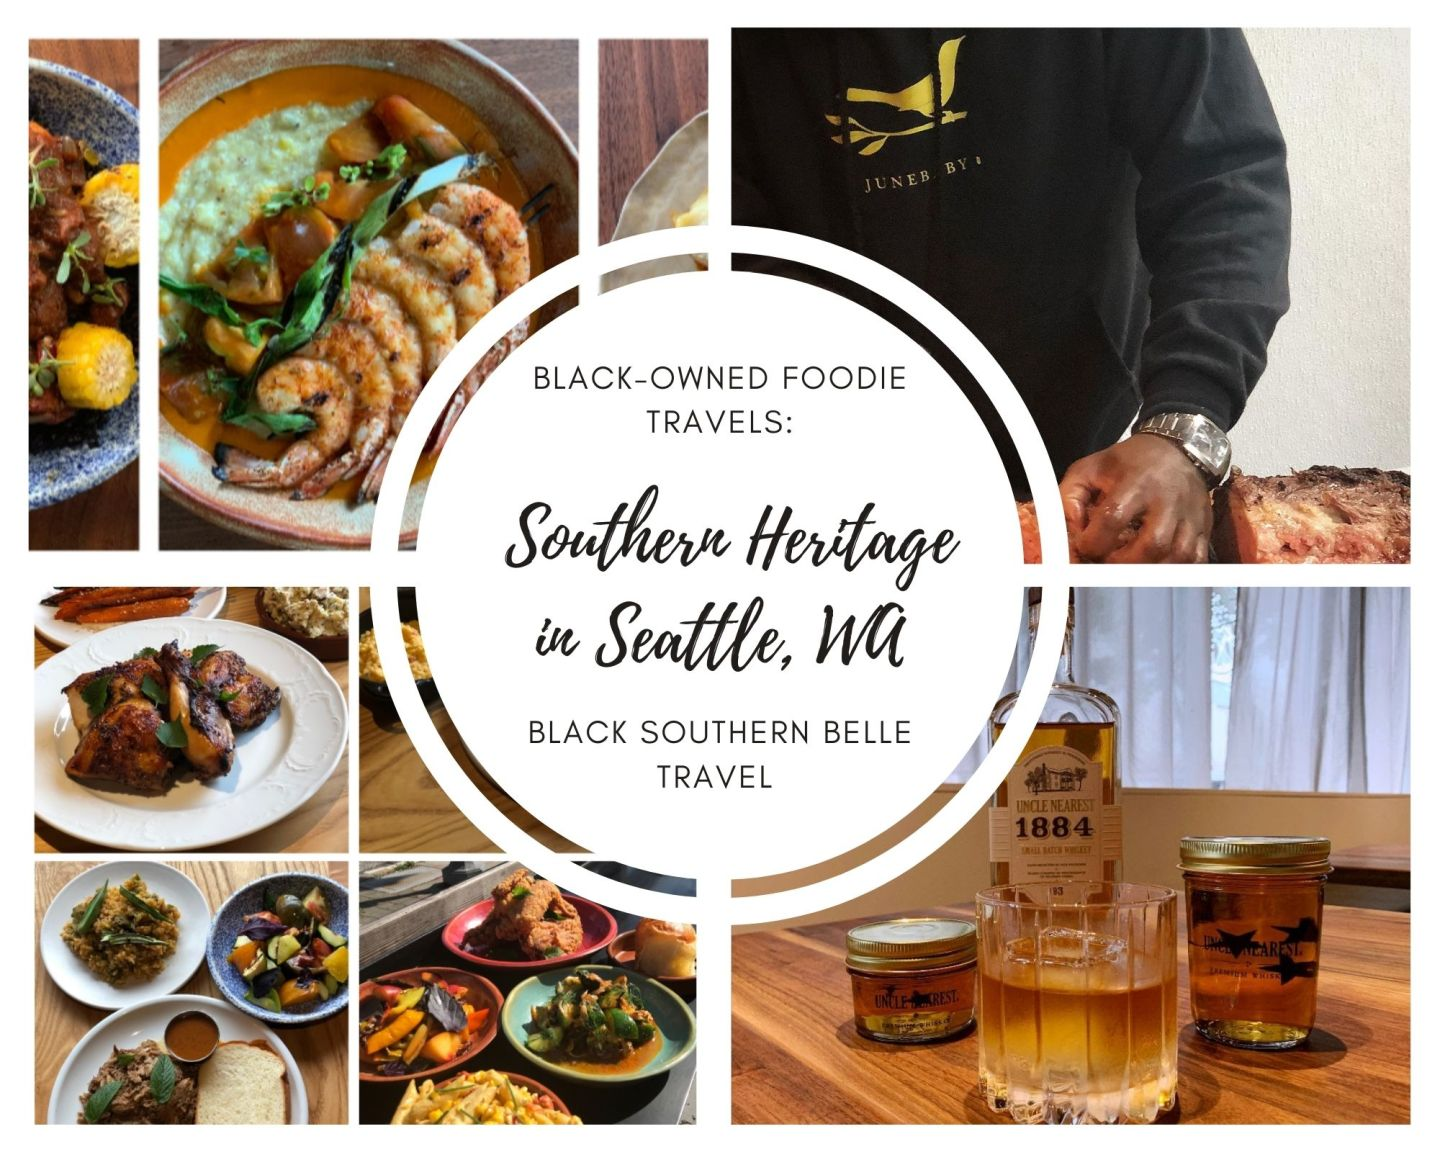 Black-Owned Foodie Travels: Southern Heritage in Seattle, WA